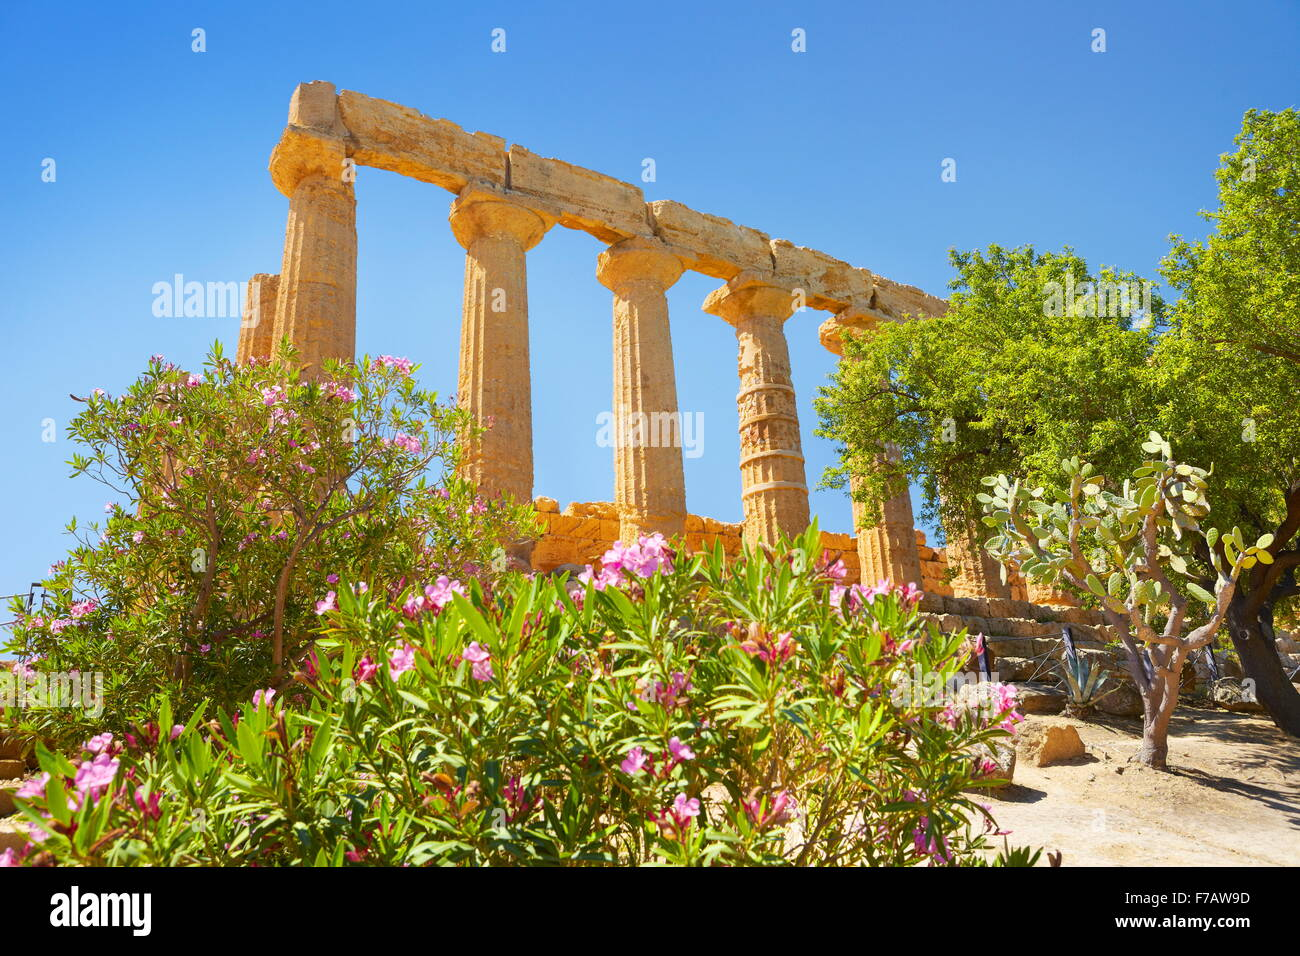 Temple of Hera in Valley of Temples (Valle dei Templi), Agrigento, Sicily, Italy UNESCO - Stock Image